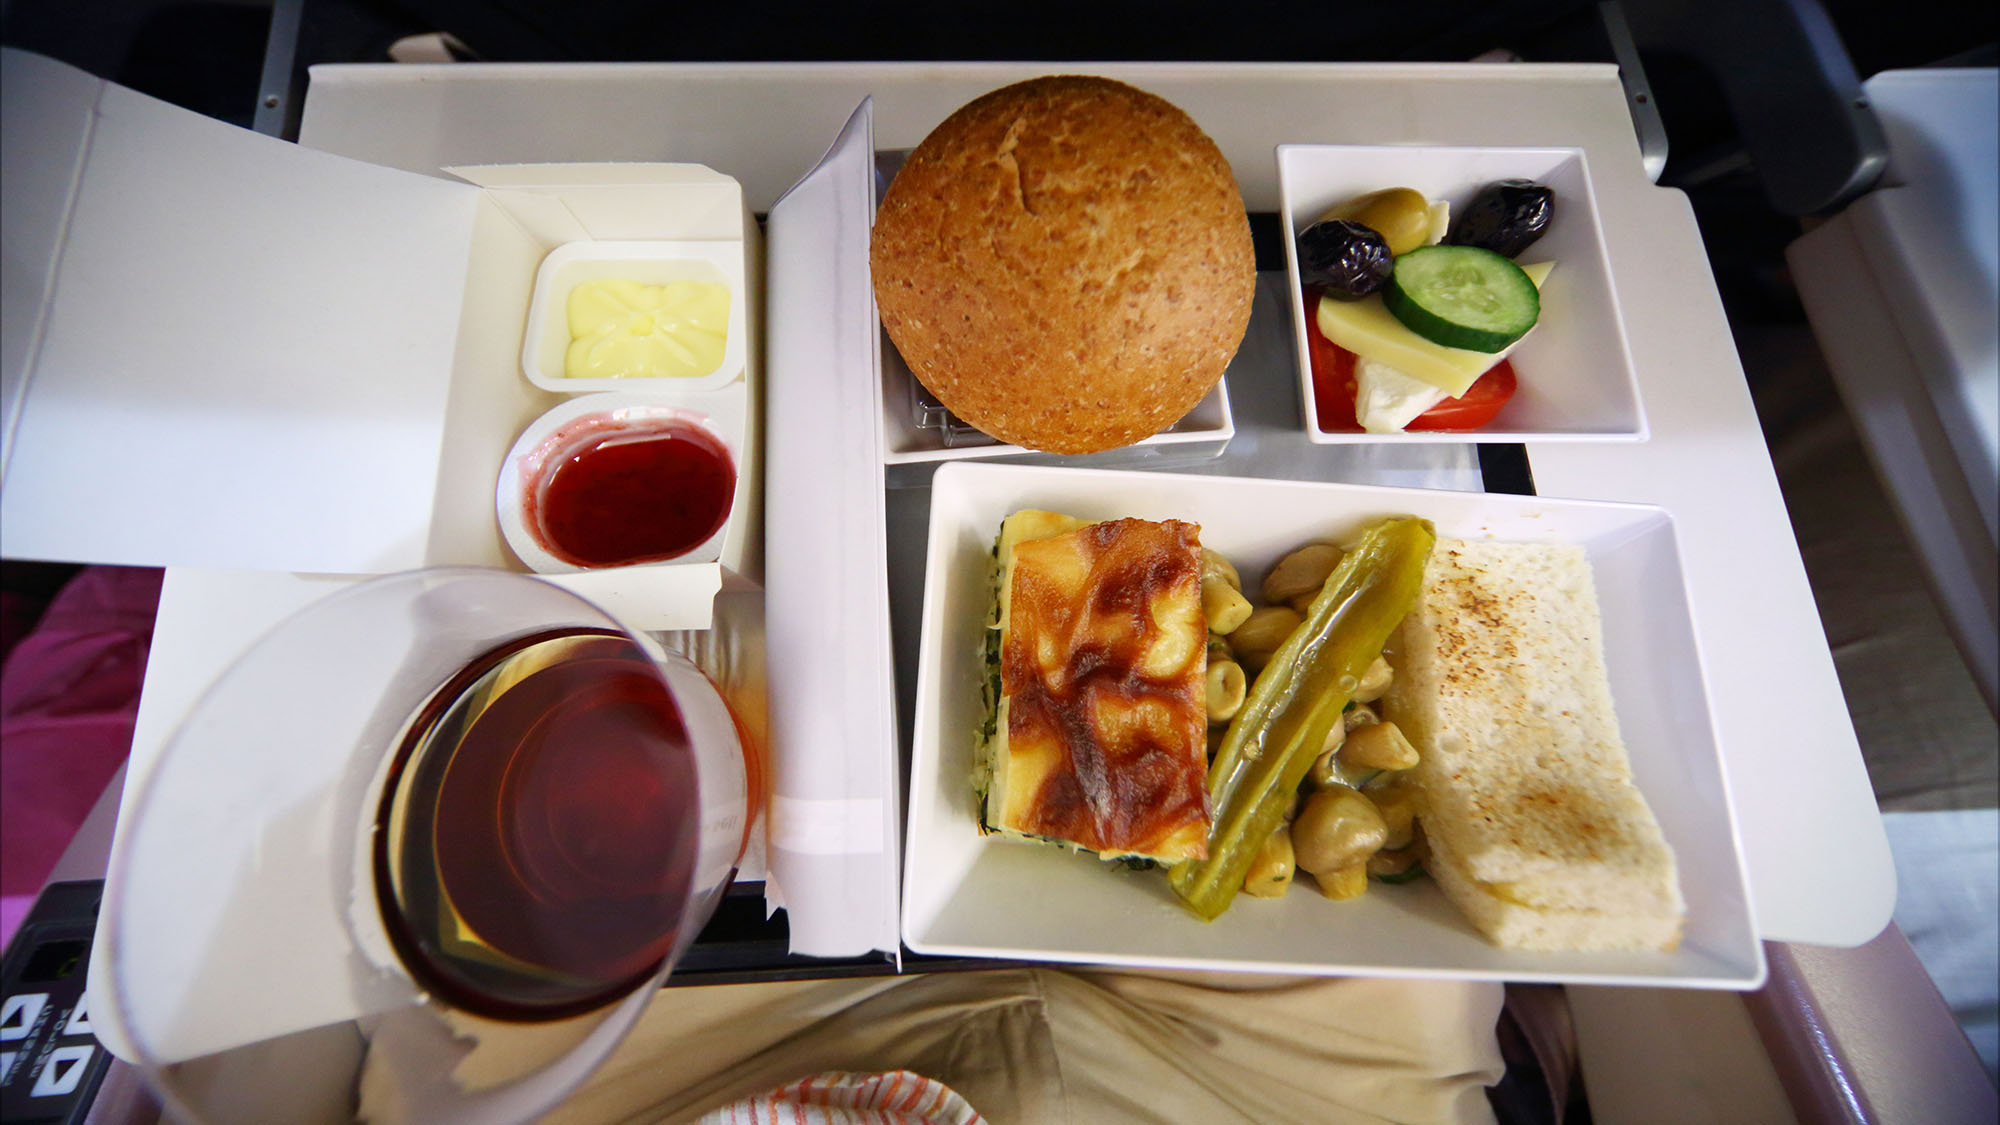 The real reason plane food doesn't taste great